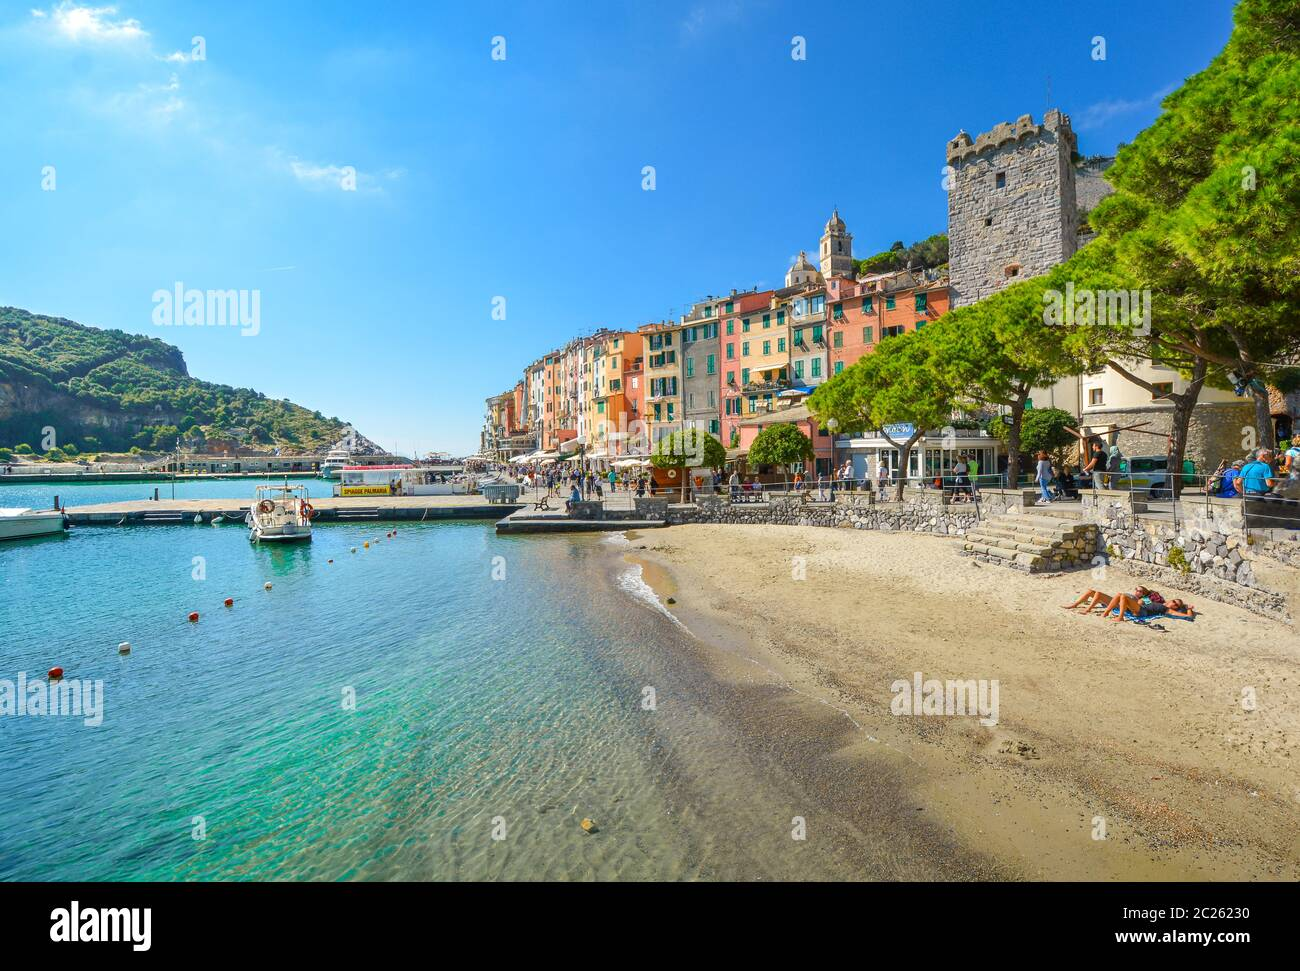 Tourists sunbathe on a sandy beach and walk the boardwalk at the seaside village and resort town of Porto Venere, Italy, an Unesco World Heritage site Stock Photo